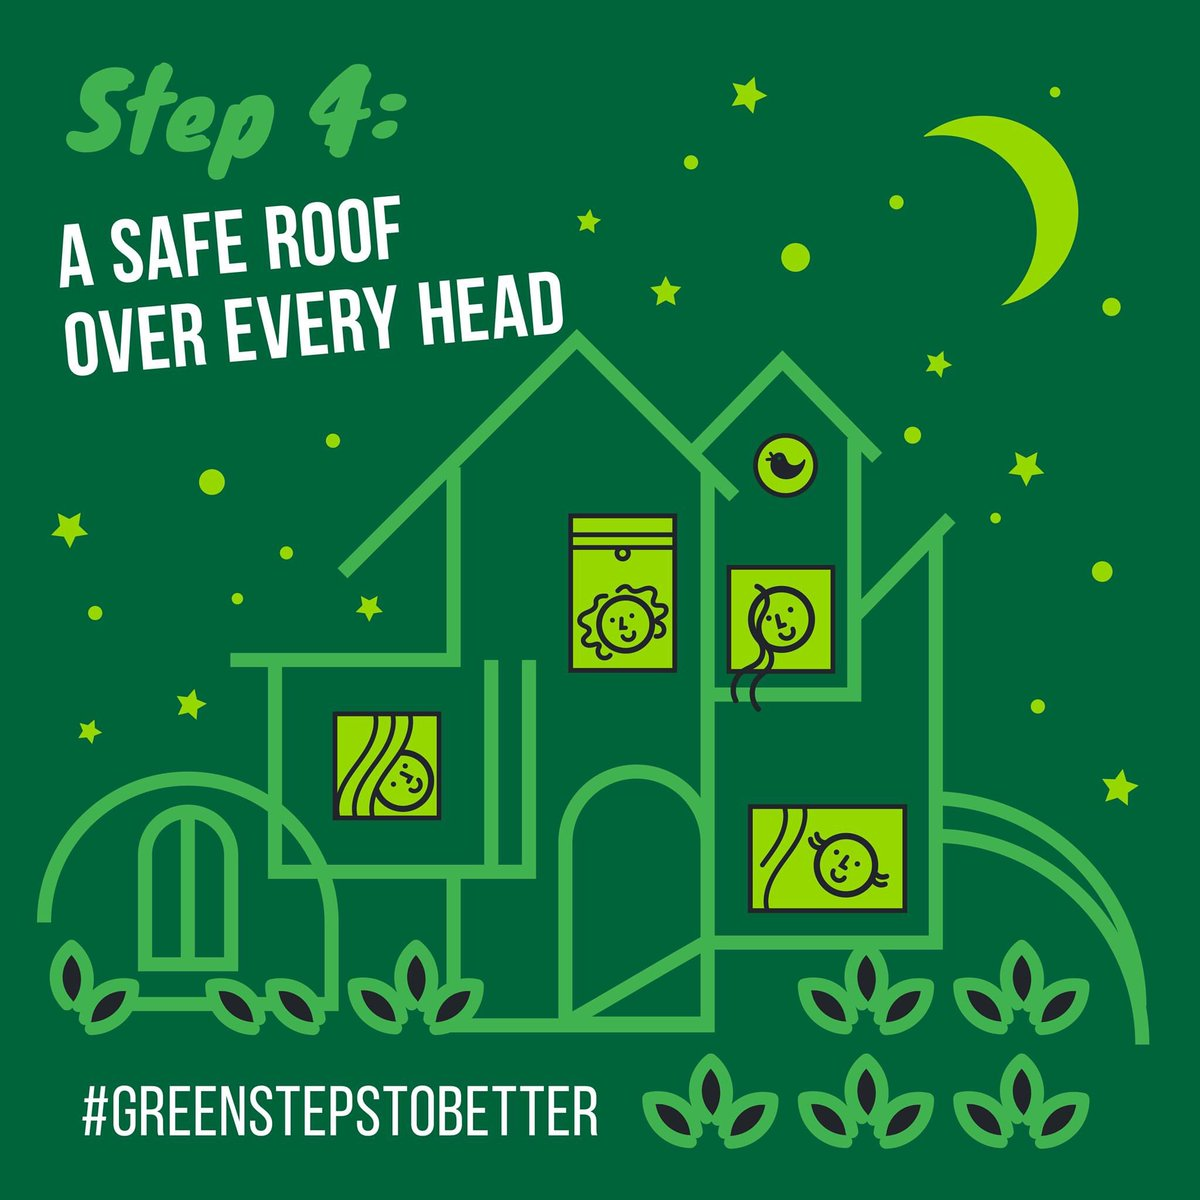 Coronavirus has shaken our world, @CarolineLucas has made a plan for #greenstepstobetter 💚🌍 Step 4: A SAFE HOME FOR EVERYONE: safe and affordable housing for all